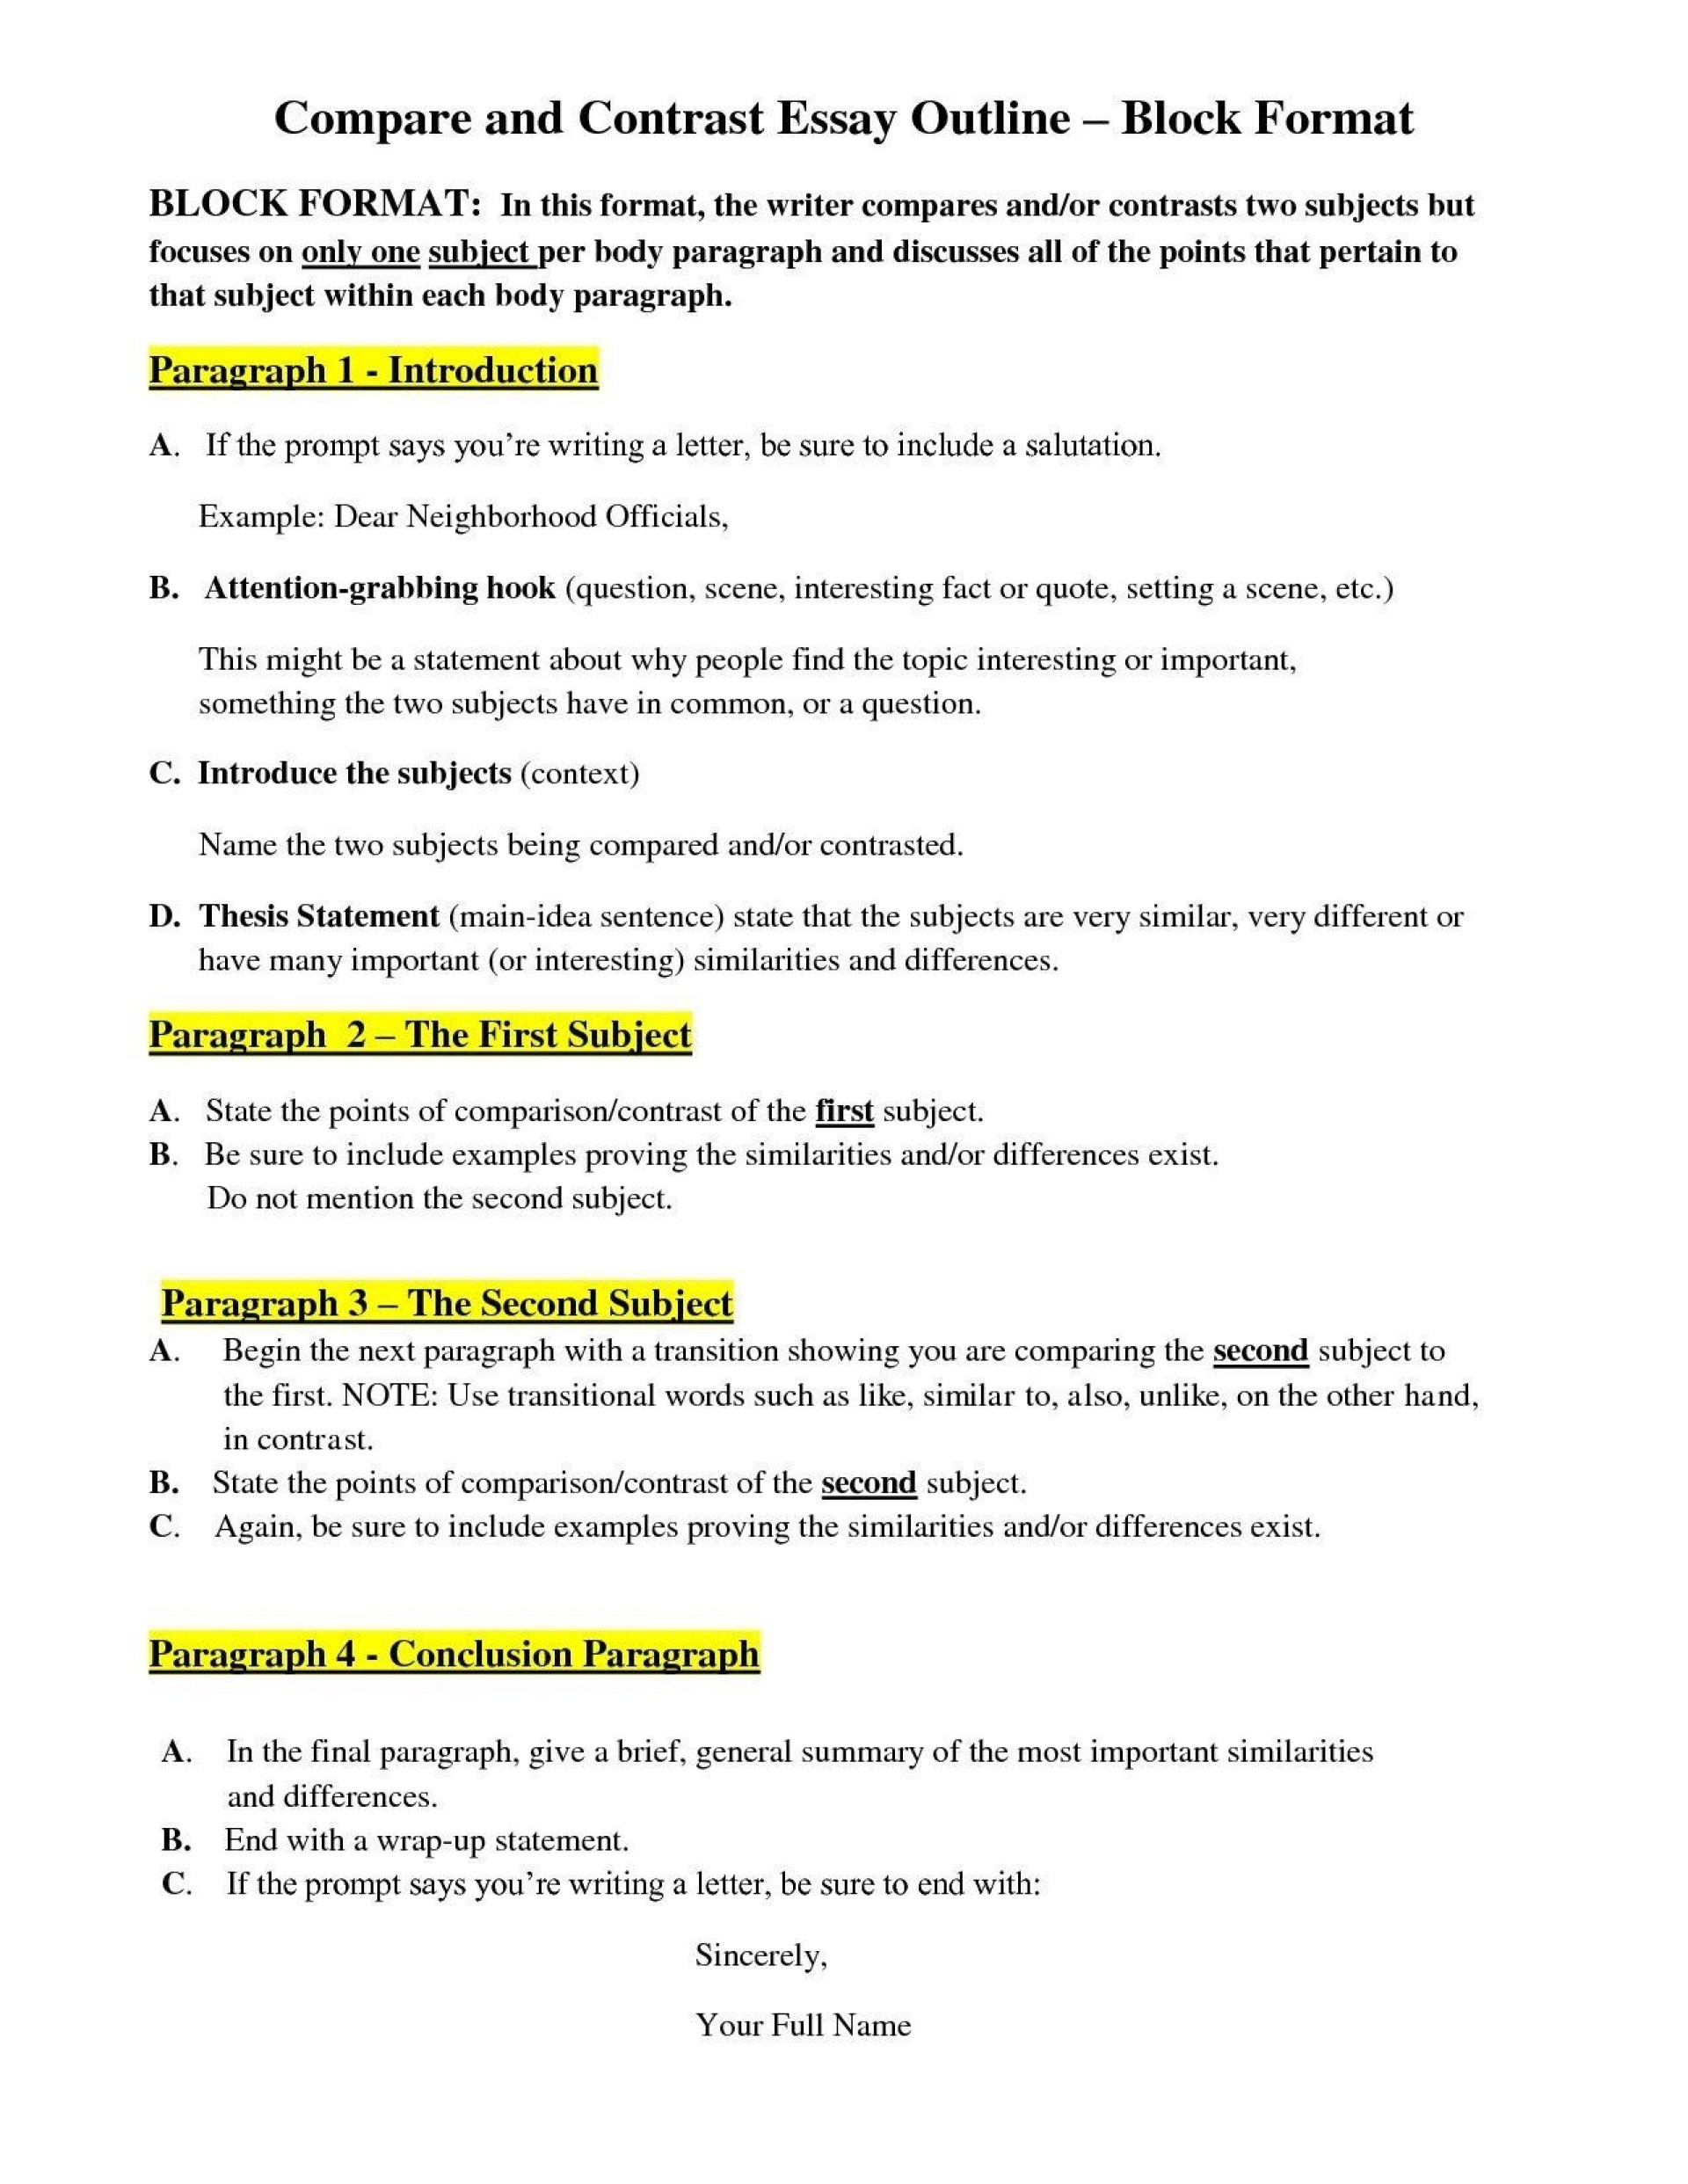 014 Essay Examplempare Andntrastmparison Best Examples Of Scenario In 6th Grade An Goo 3rd Food 5th Middle School Block Format Pdf High 4th Vs Striking Compare And Contrast Example For College Students Topics 7th 1920